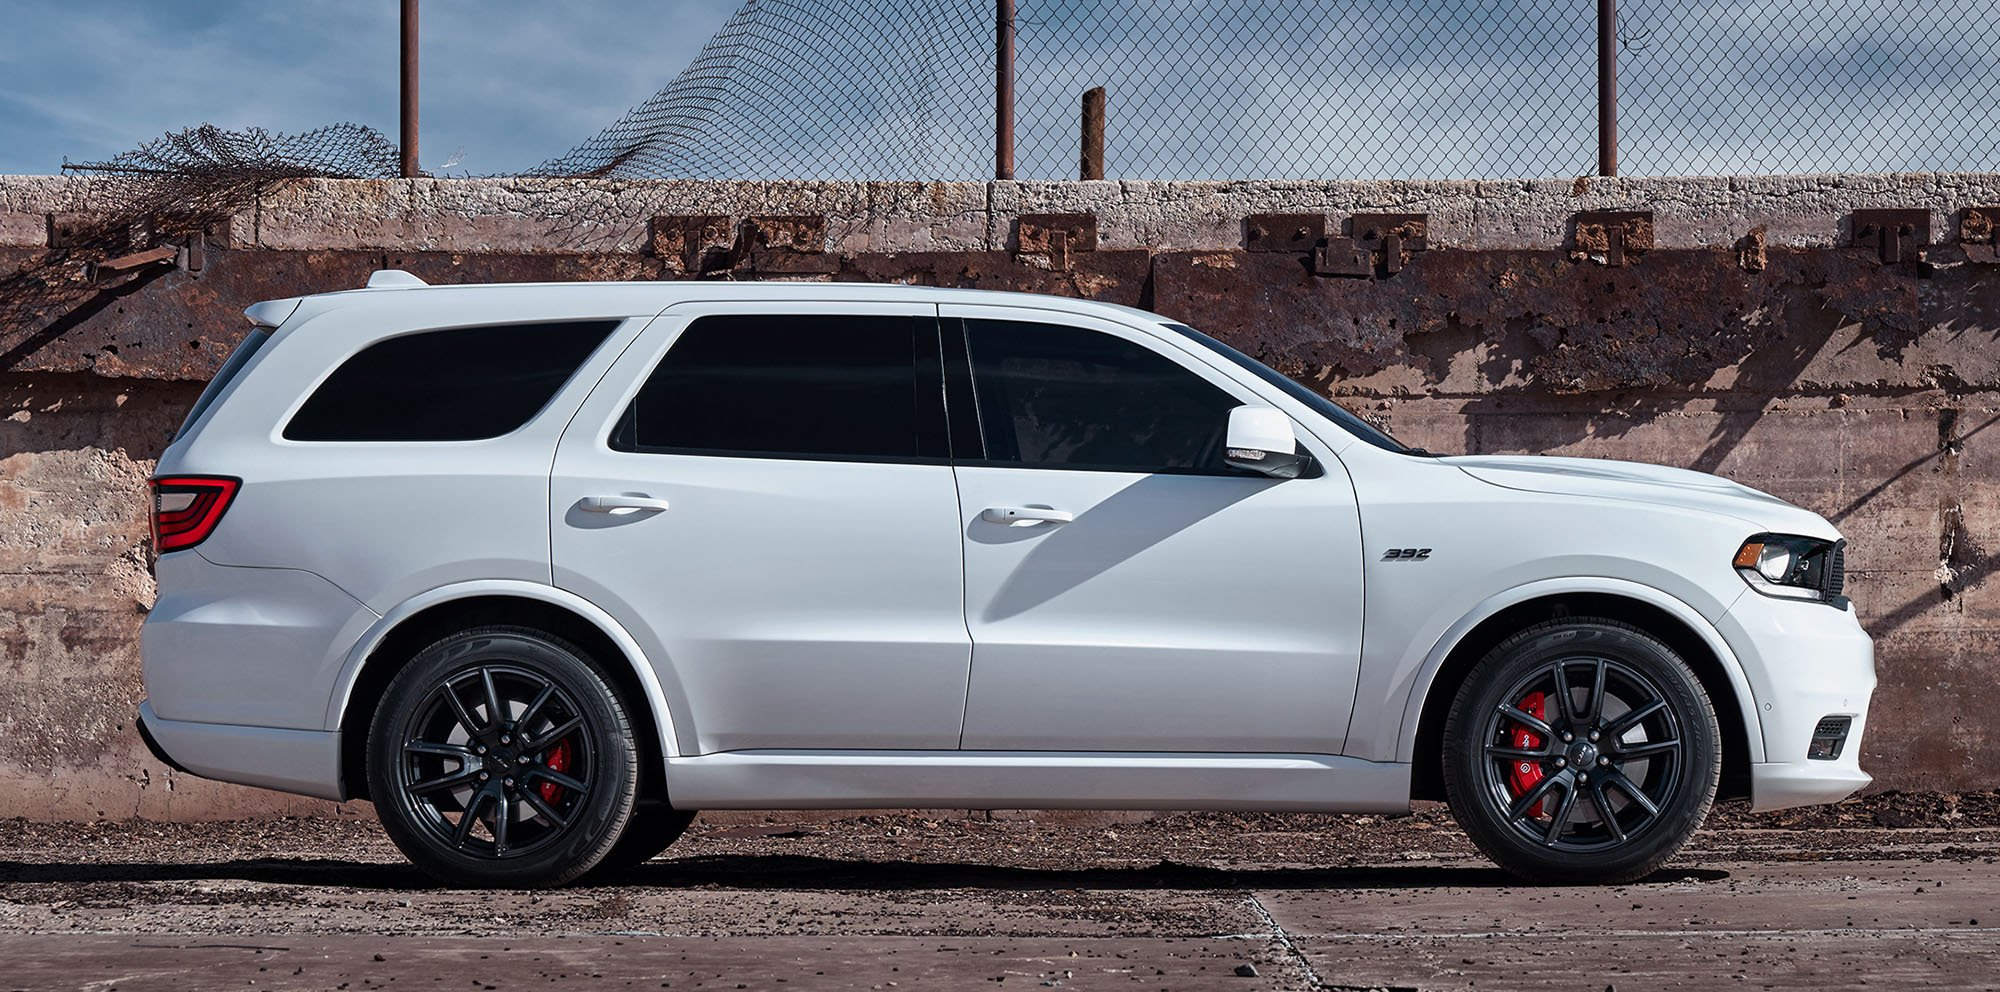 2018 Dodge Durango SRT revealed - photos | CarAdvice